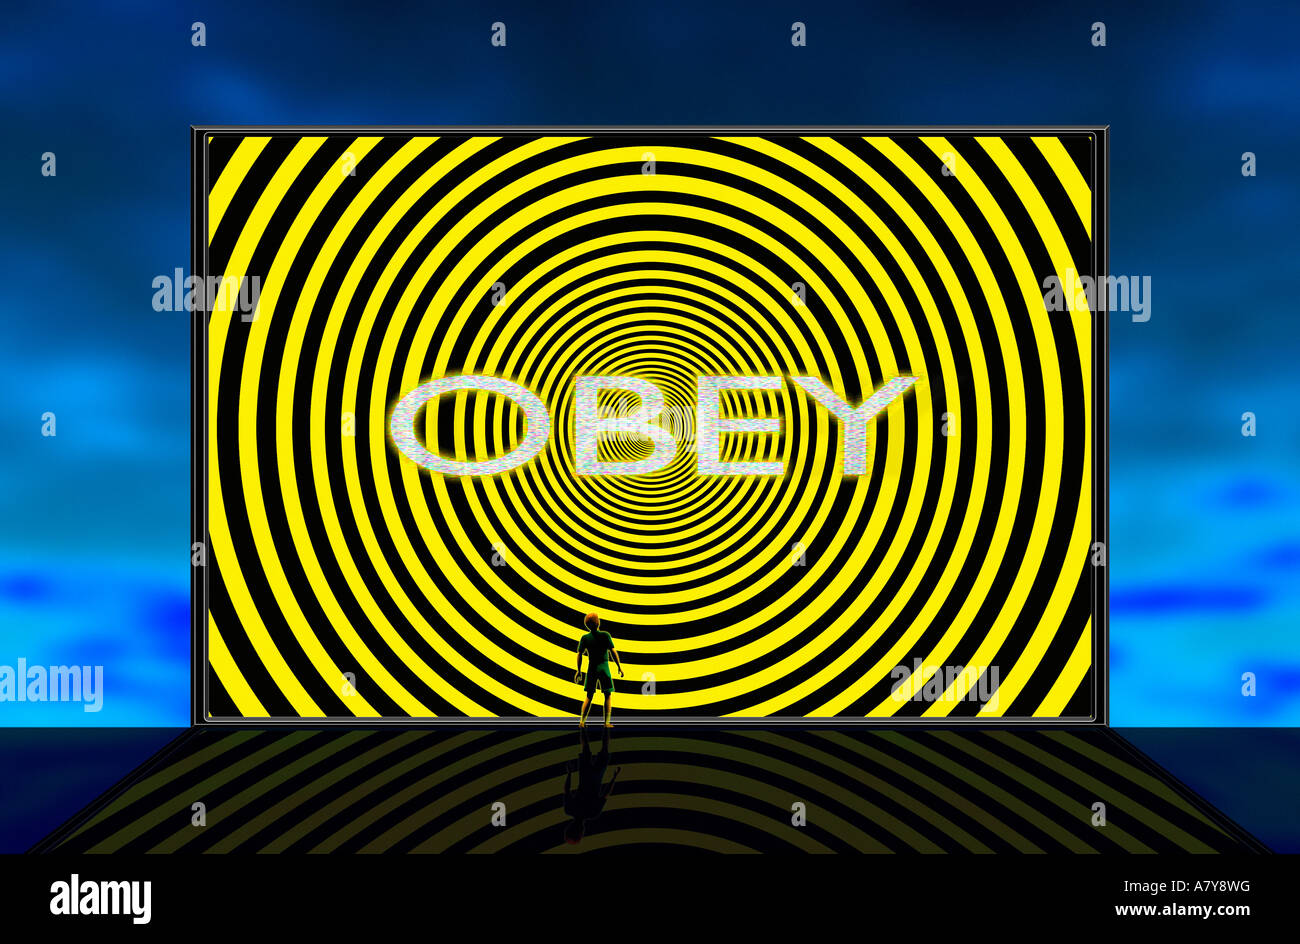 Hypnotic Screen with Big Brother orders to 'obey' - Stock Image